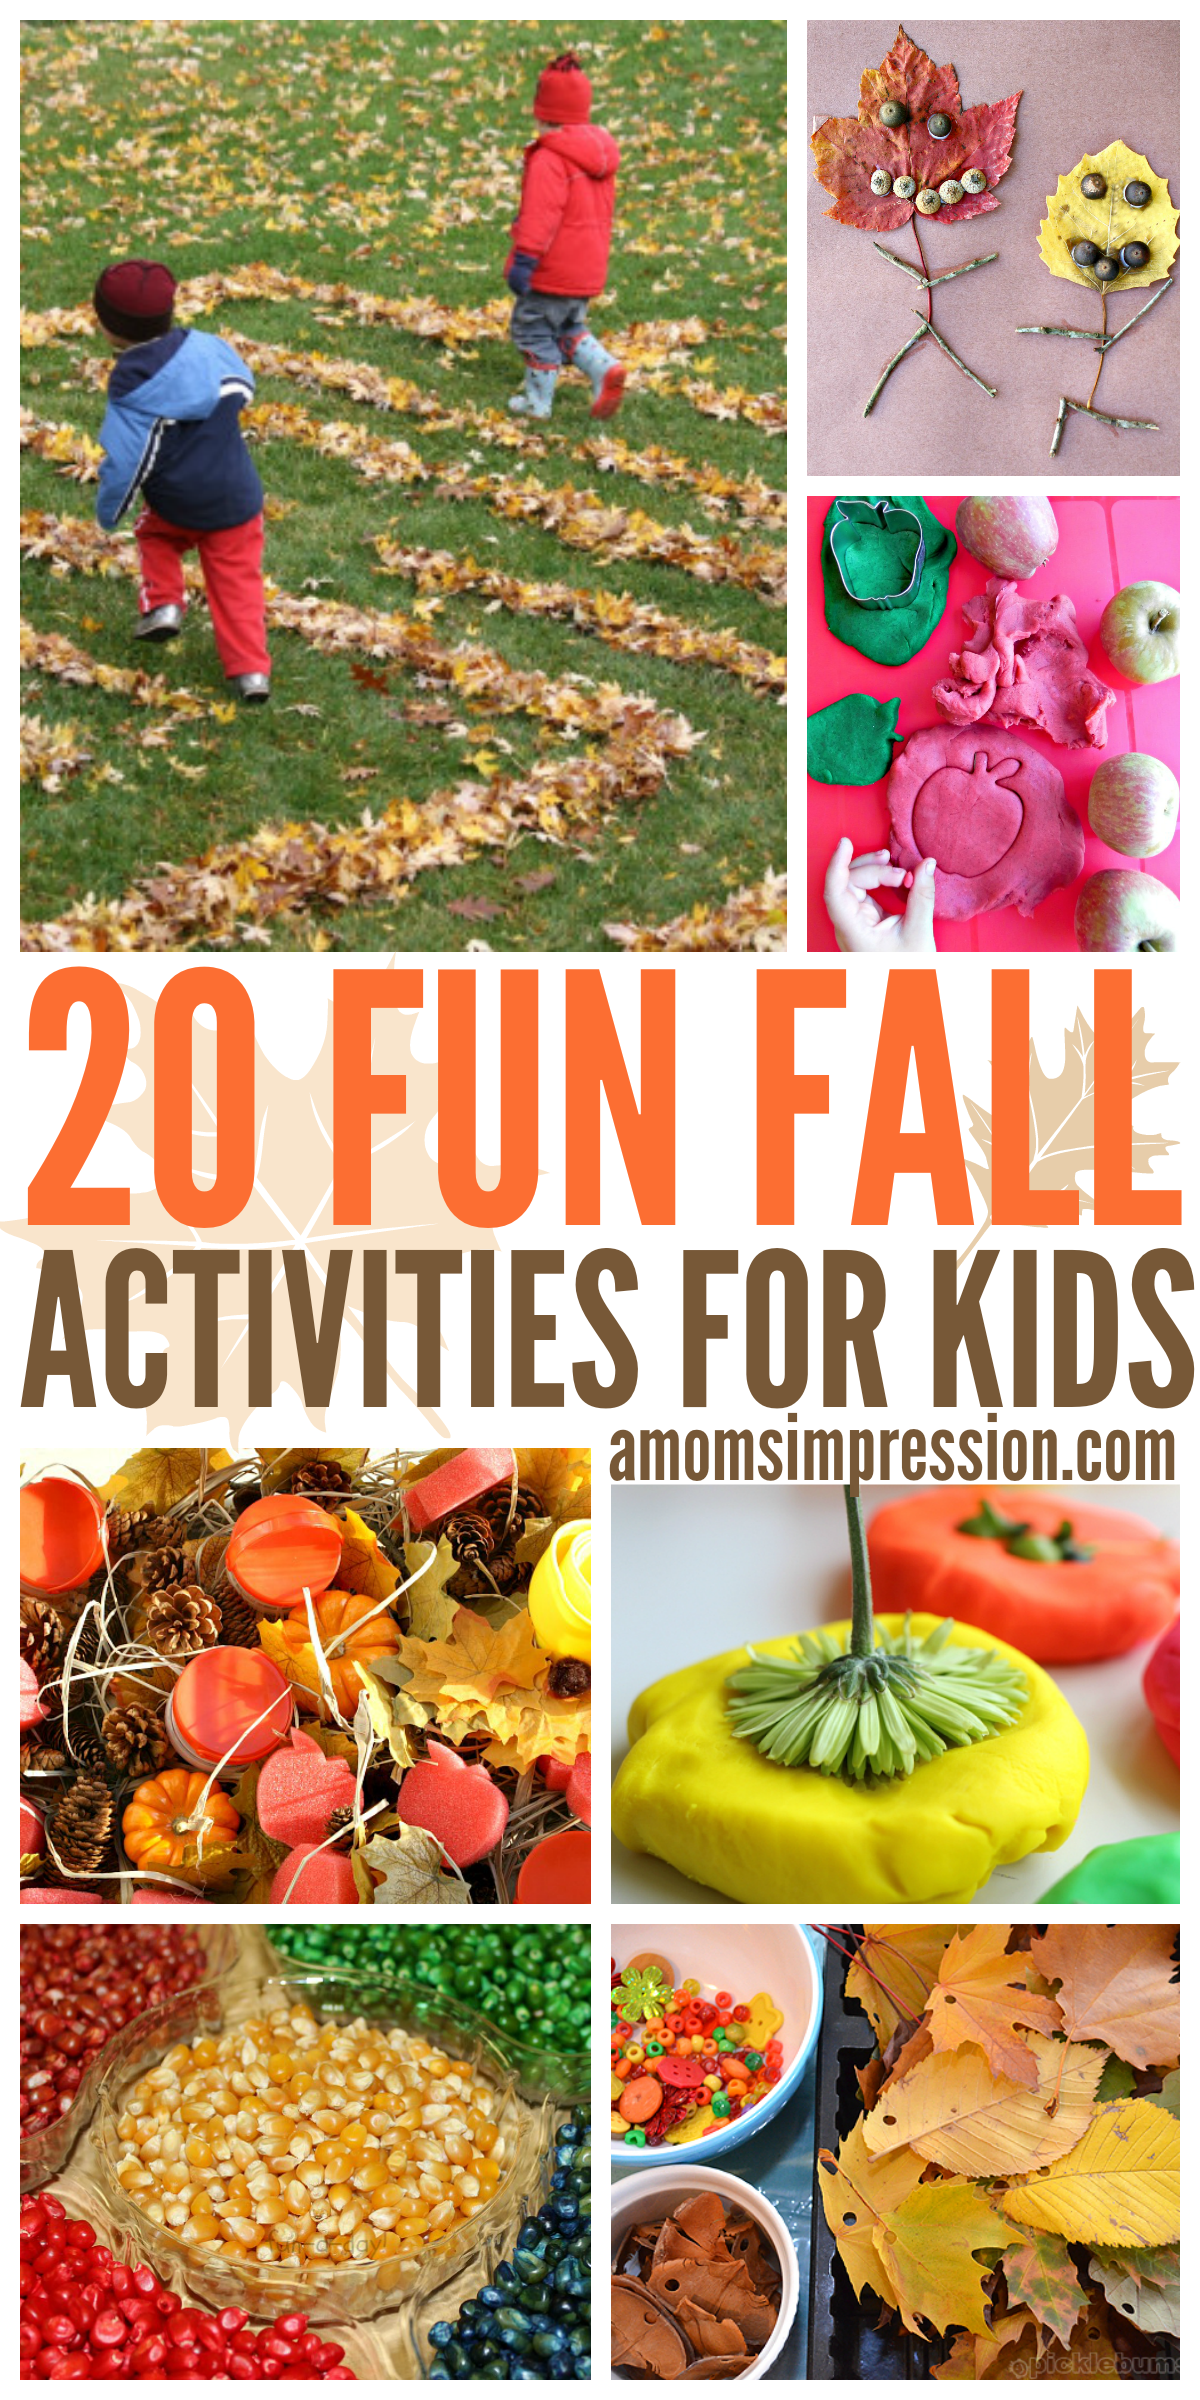 20 Fun Fall Activities For Kids These Diy Fall Ideas And